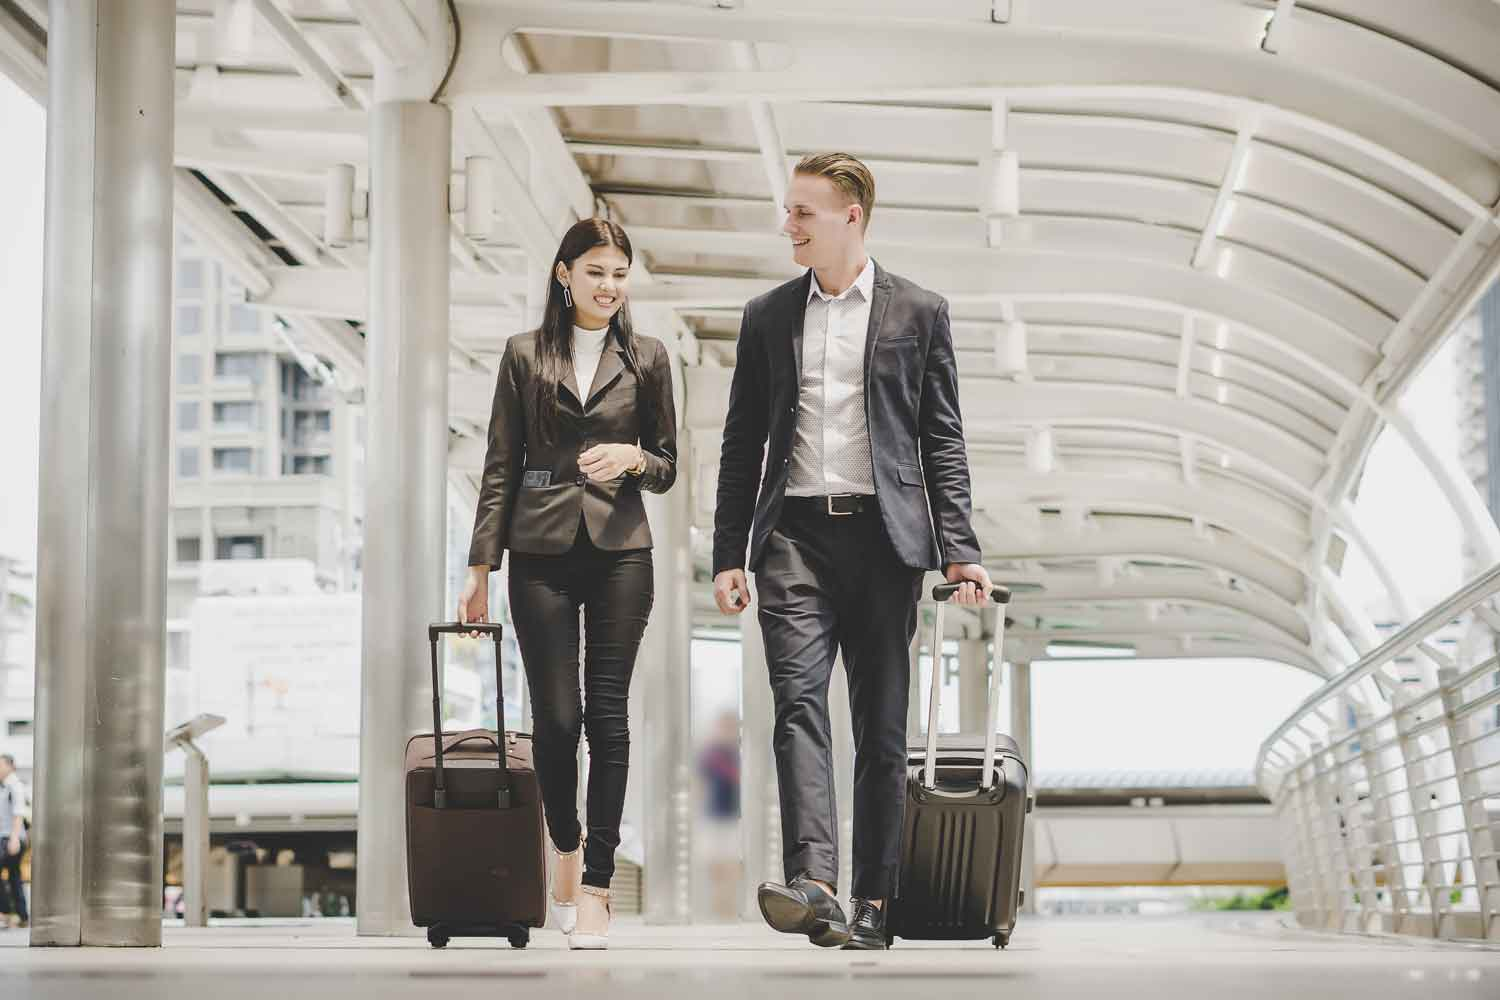 QuoteMe.ie business customers travelling abroad but happy they have extensive travel cover for all eventualities